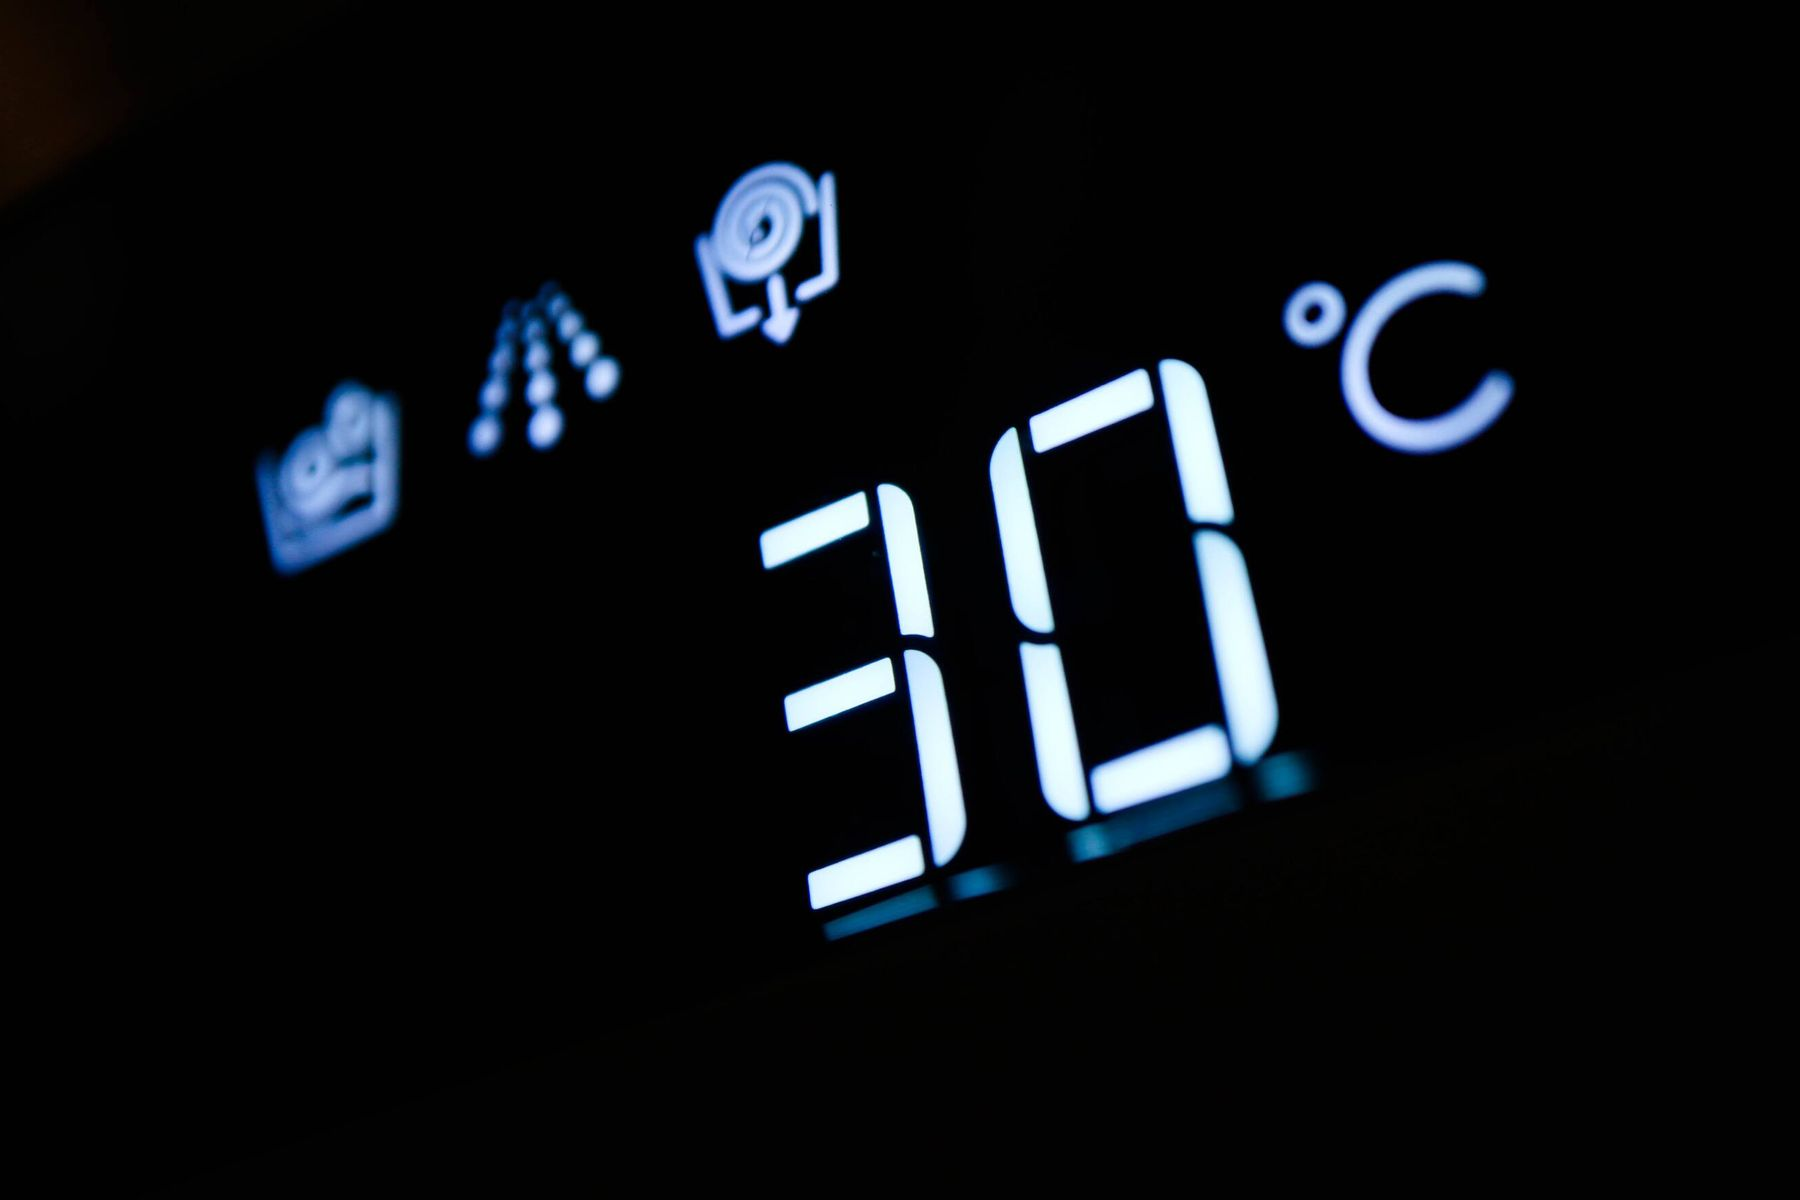 30C showing on a washing machine's digital display